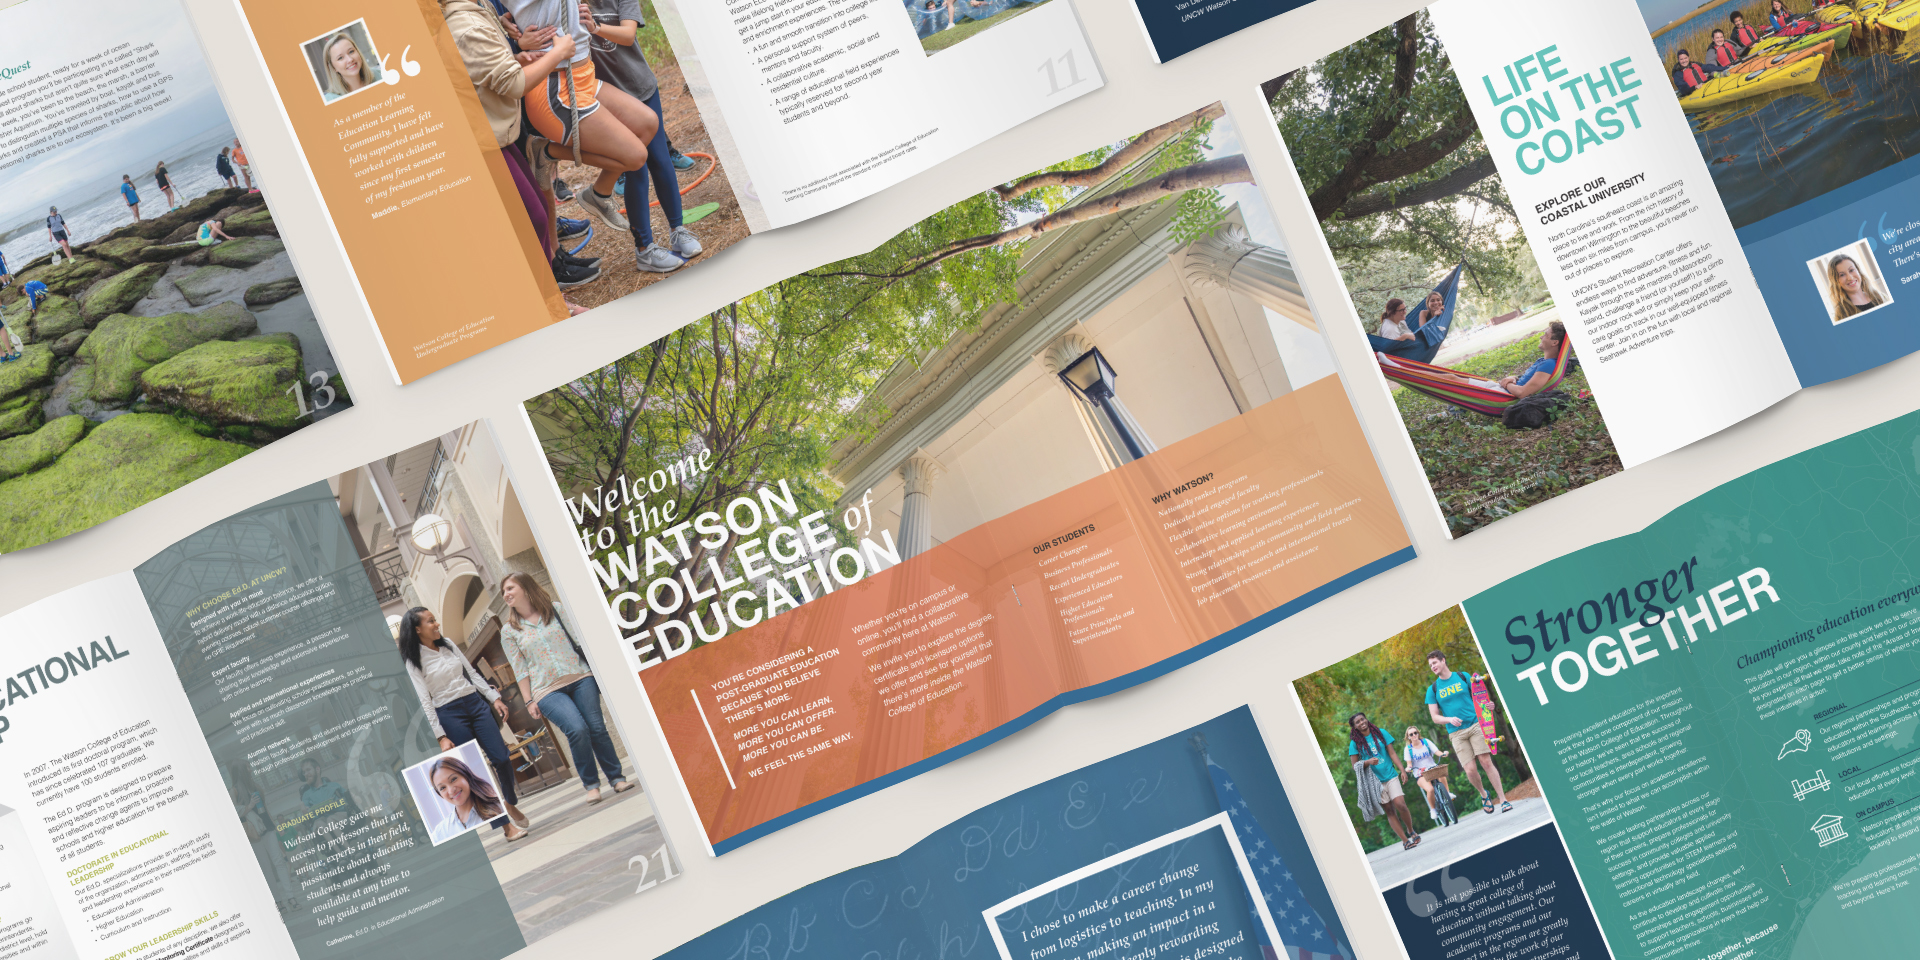 University of North Carolina at Wilmington - Print Marketing by Springer Studios, Wilmington, NC